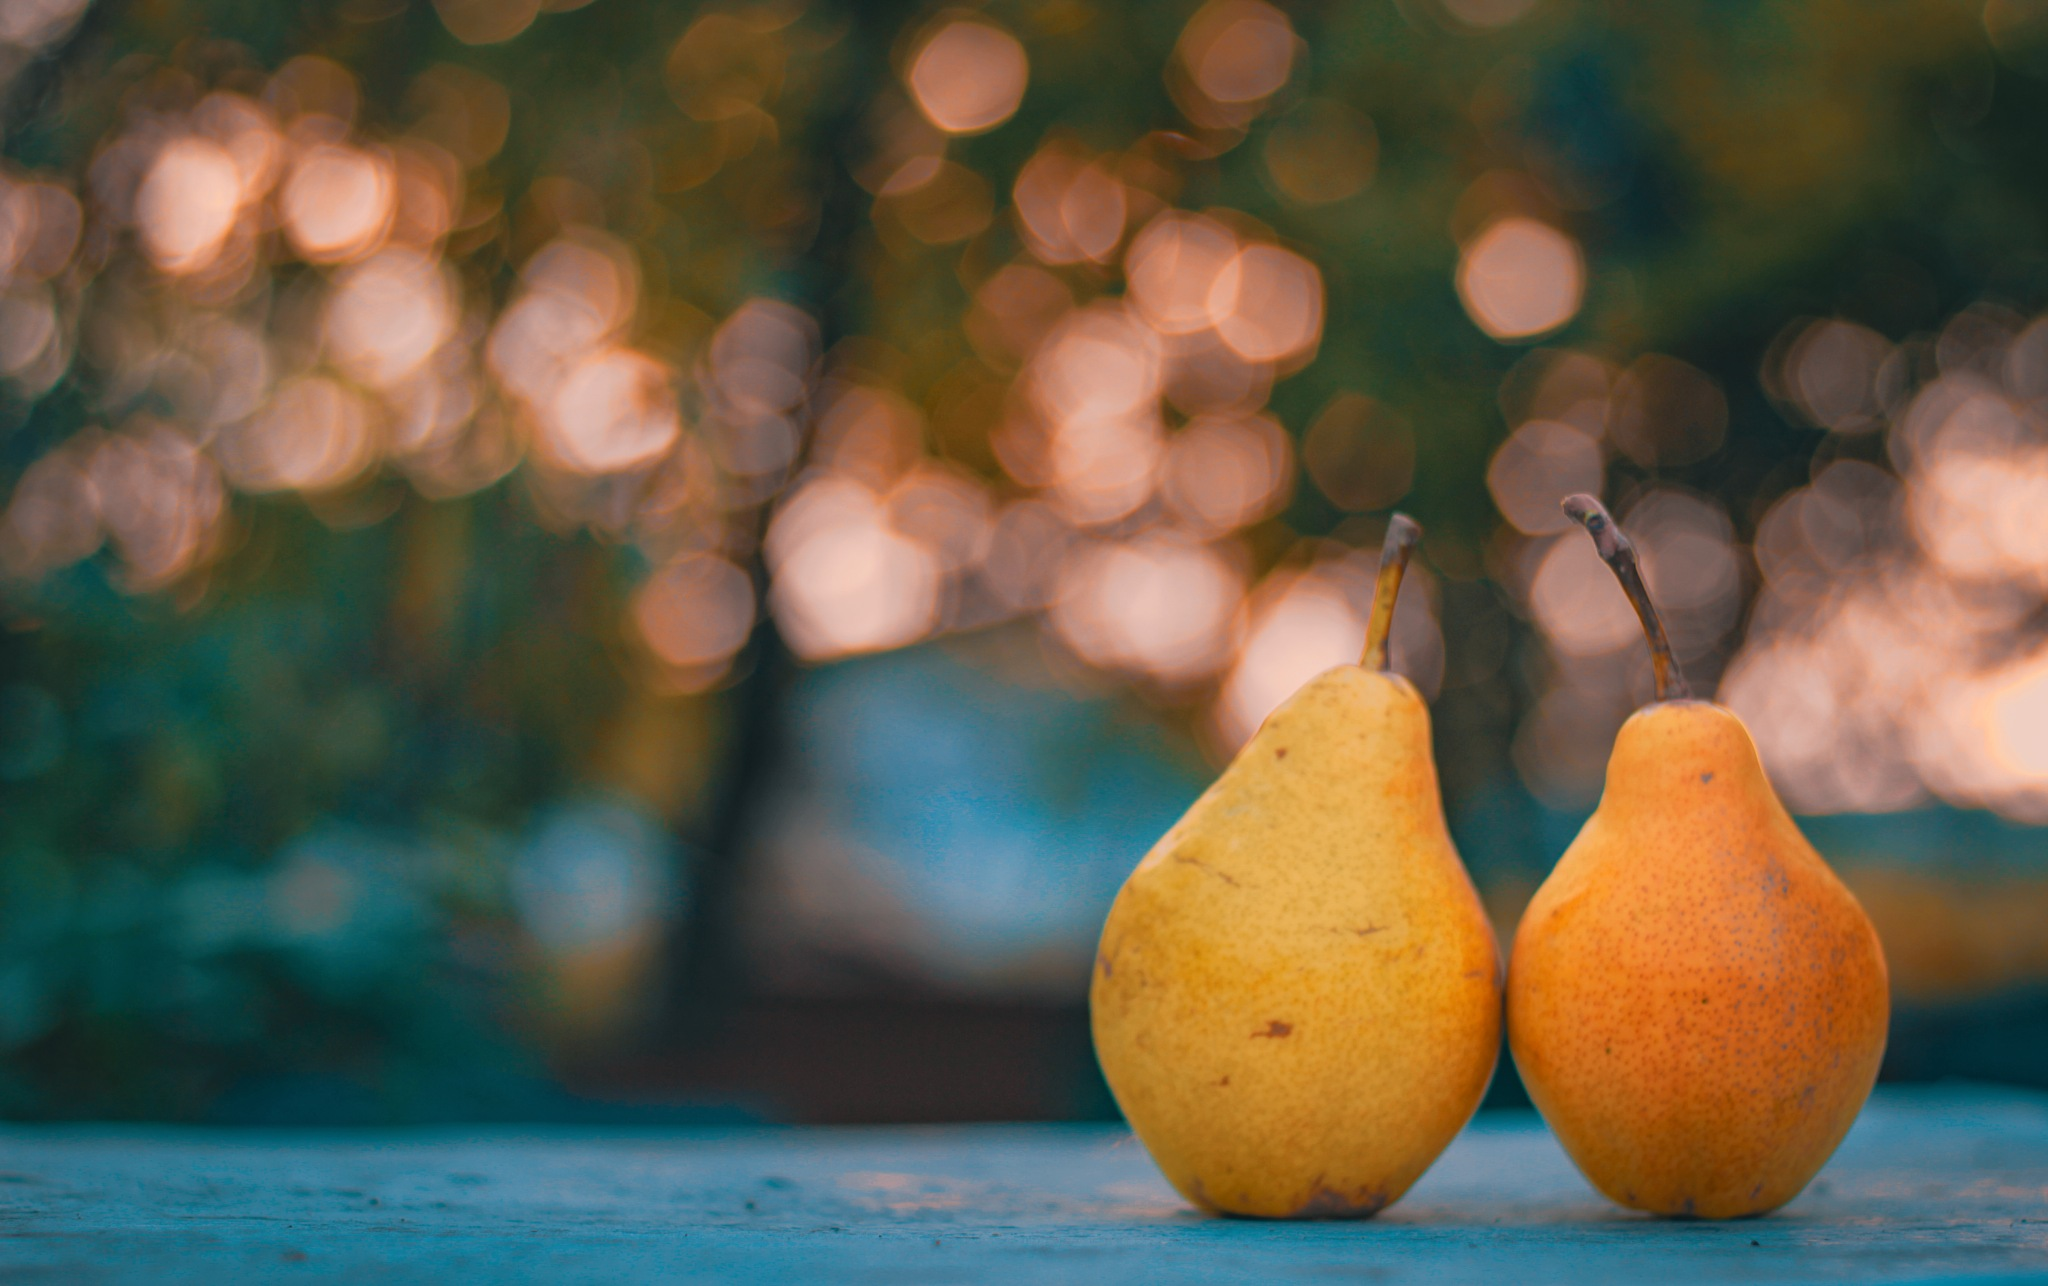 I'm into pears. Apparently by Ivan Kosenko